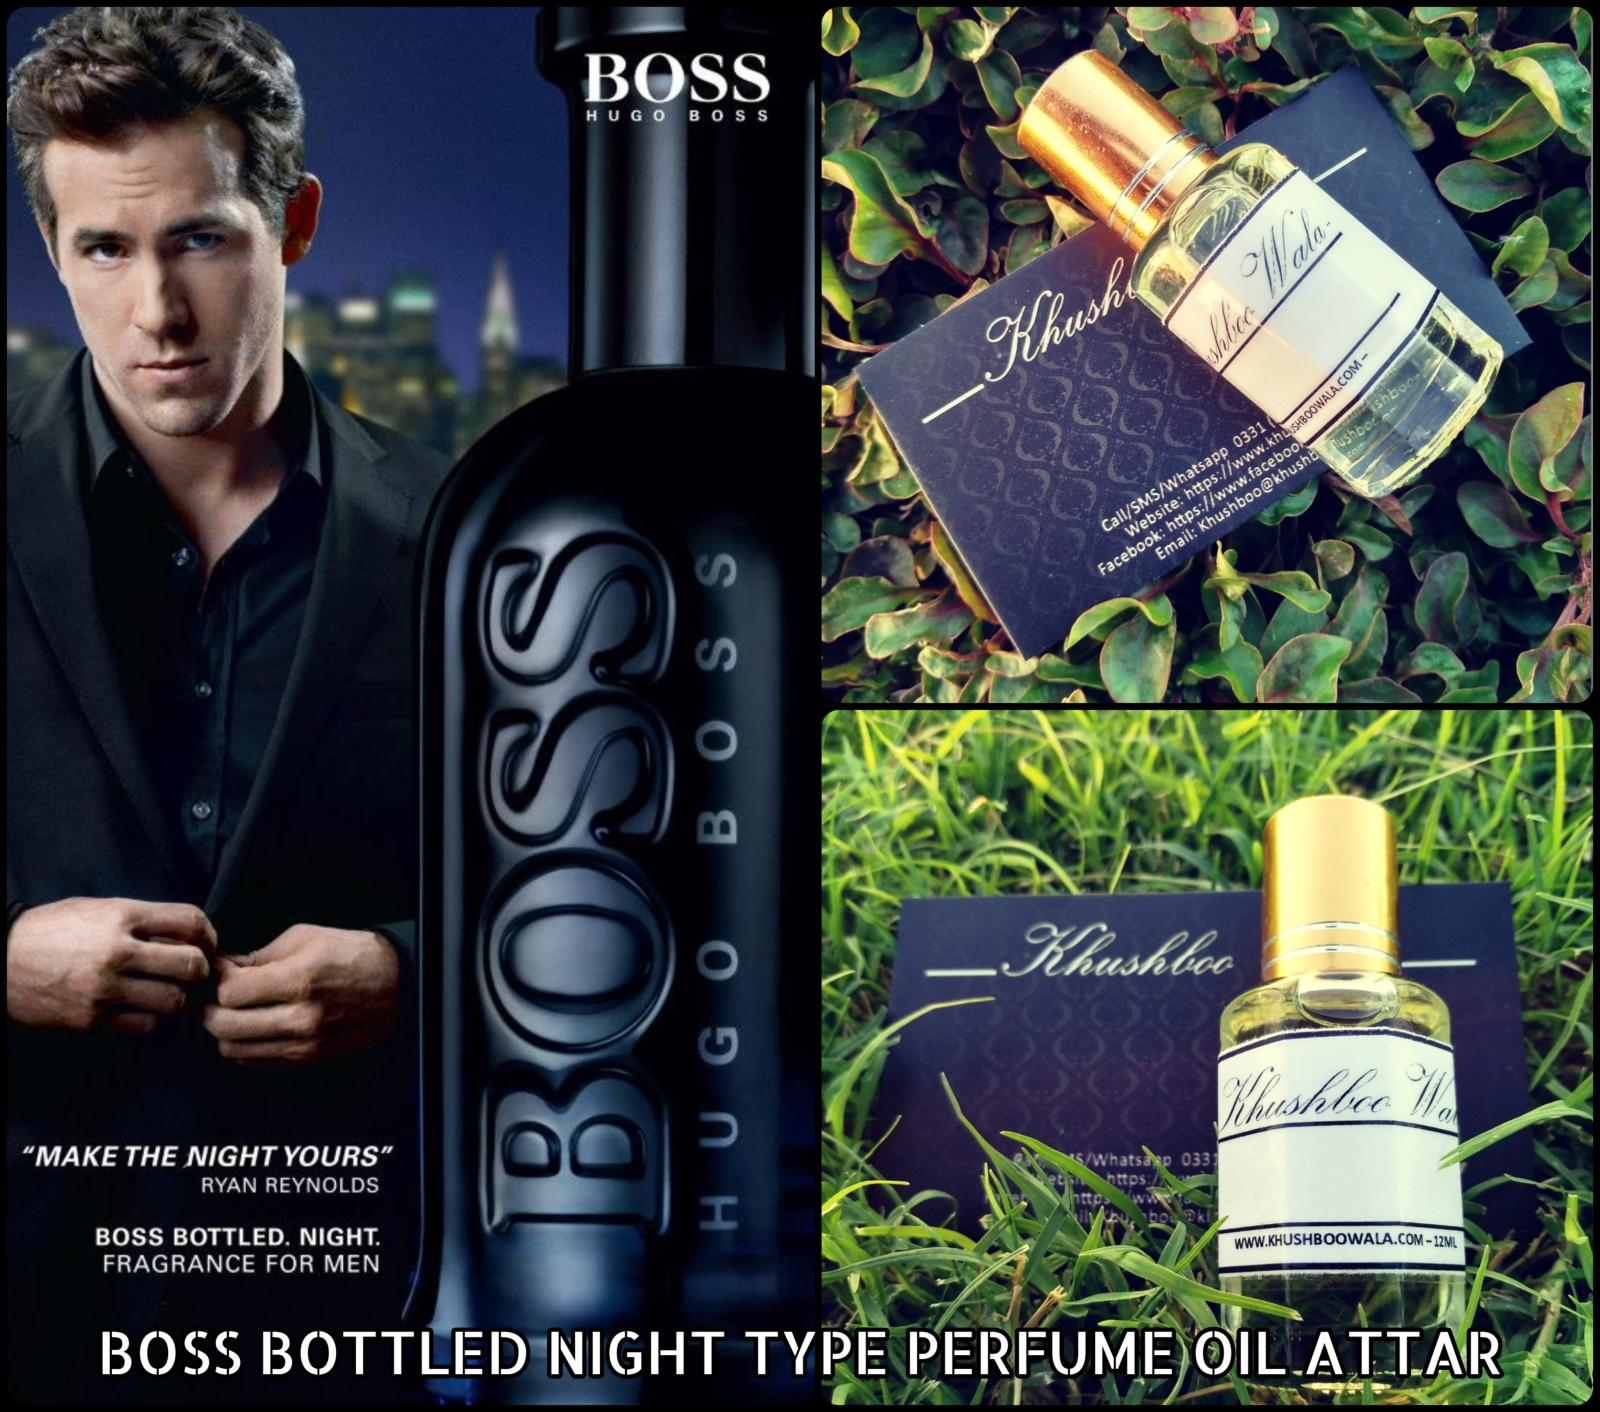 Boss Bottled Night Type Concentrated Perfume Oil Attar 12ml Buy